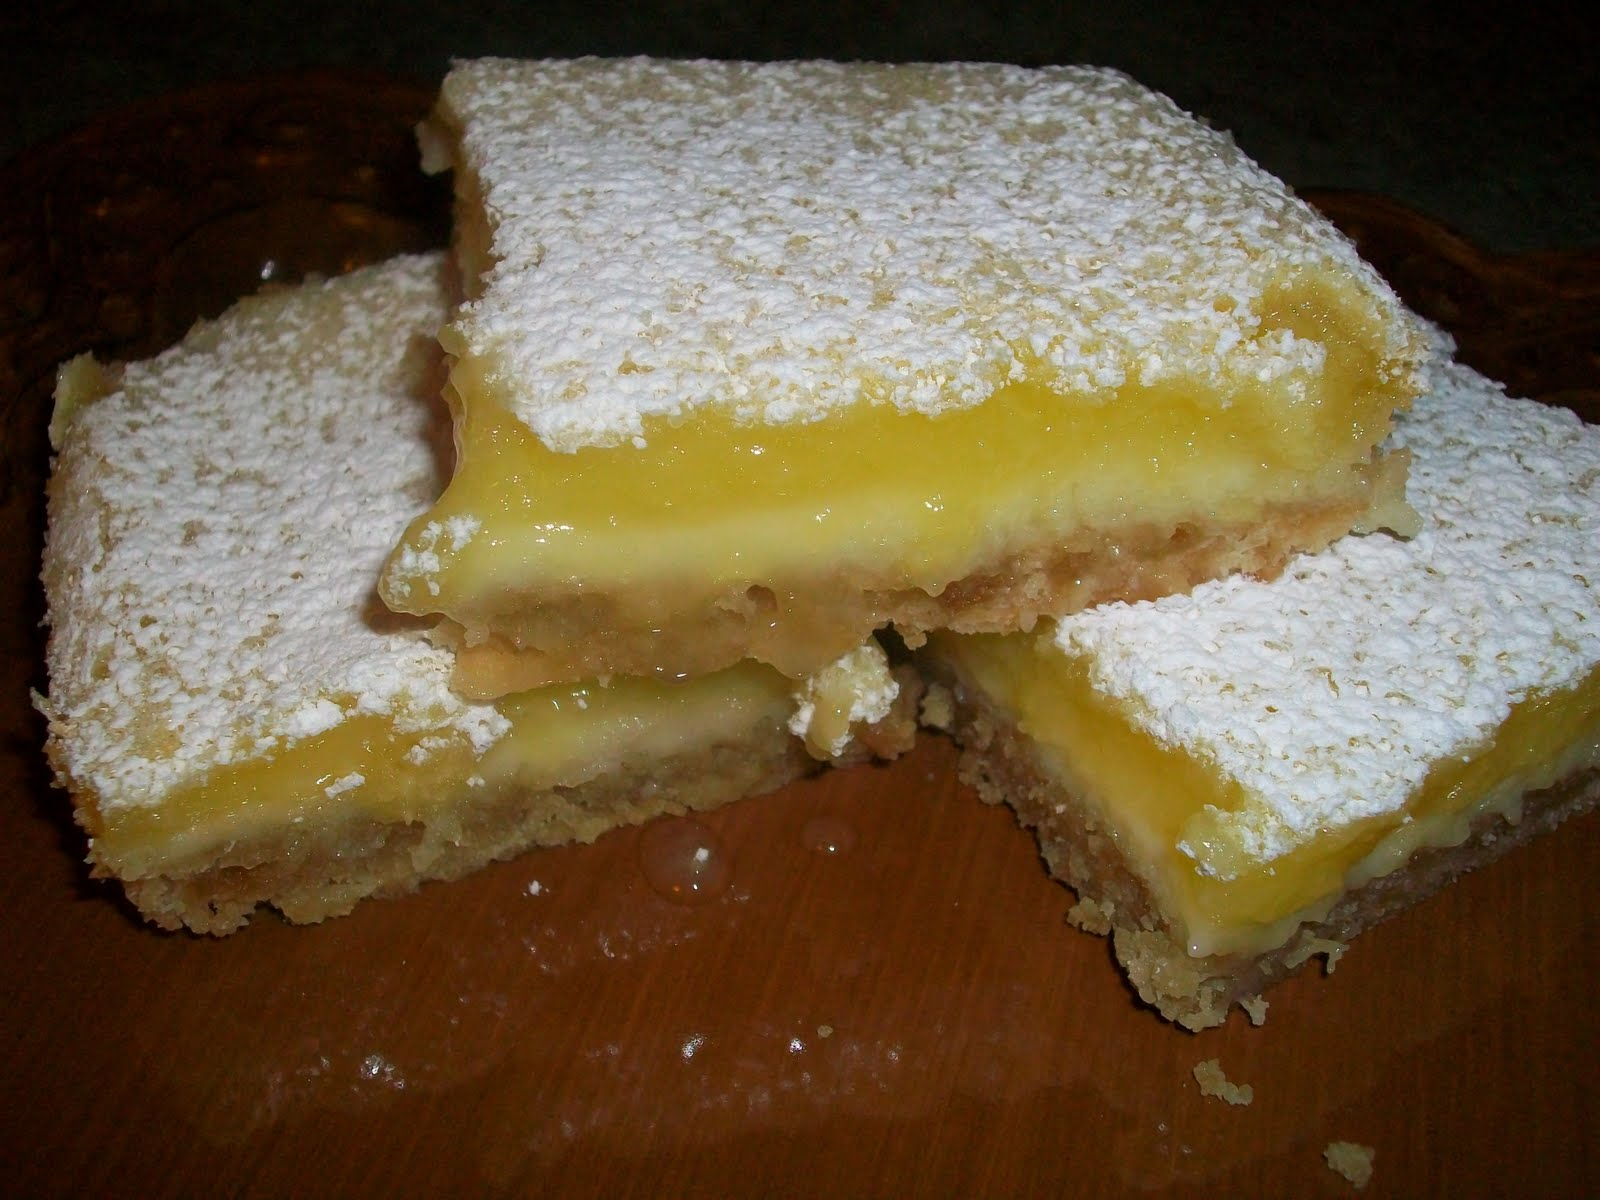 Double the Deliciousness: Lemon Cheesecake Bars